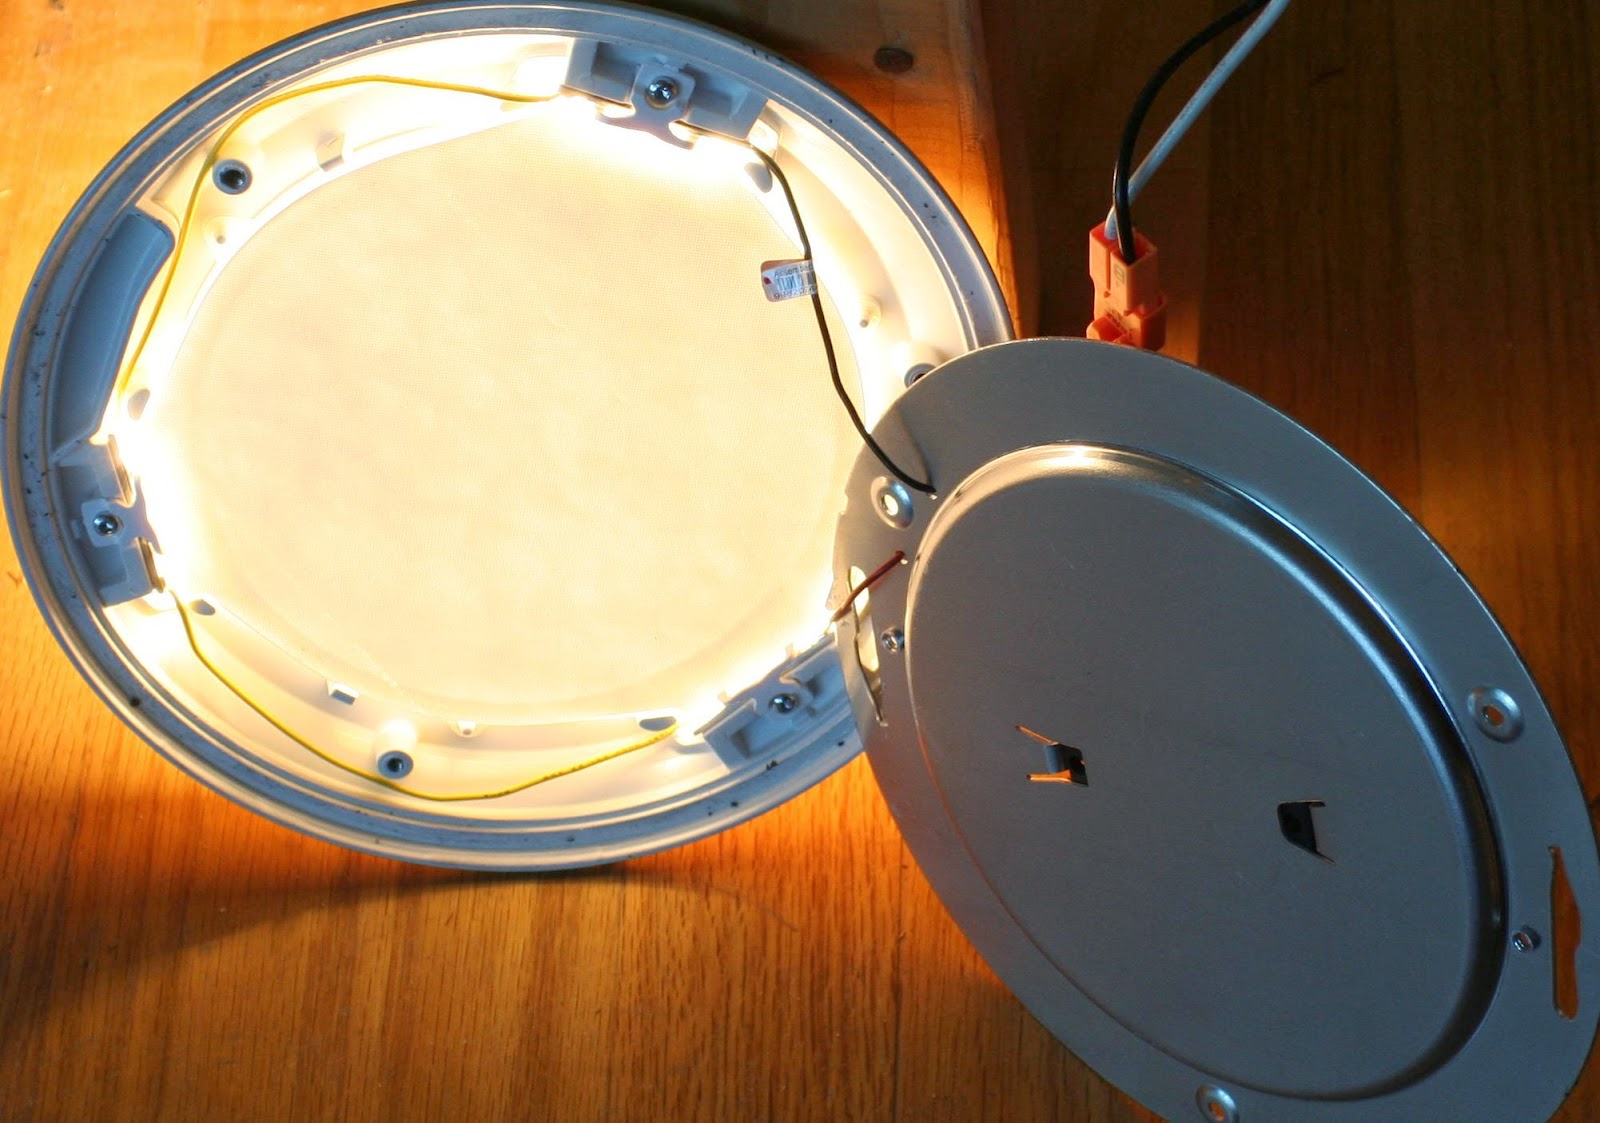 Energy Conservation How To Review Cooper Lighting HALO LED